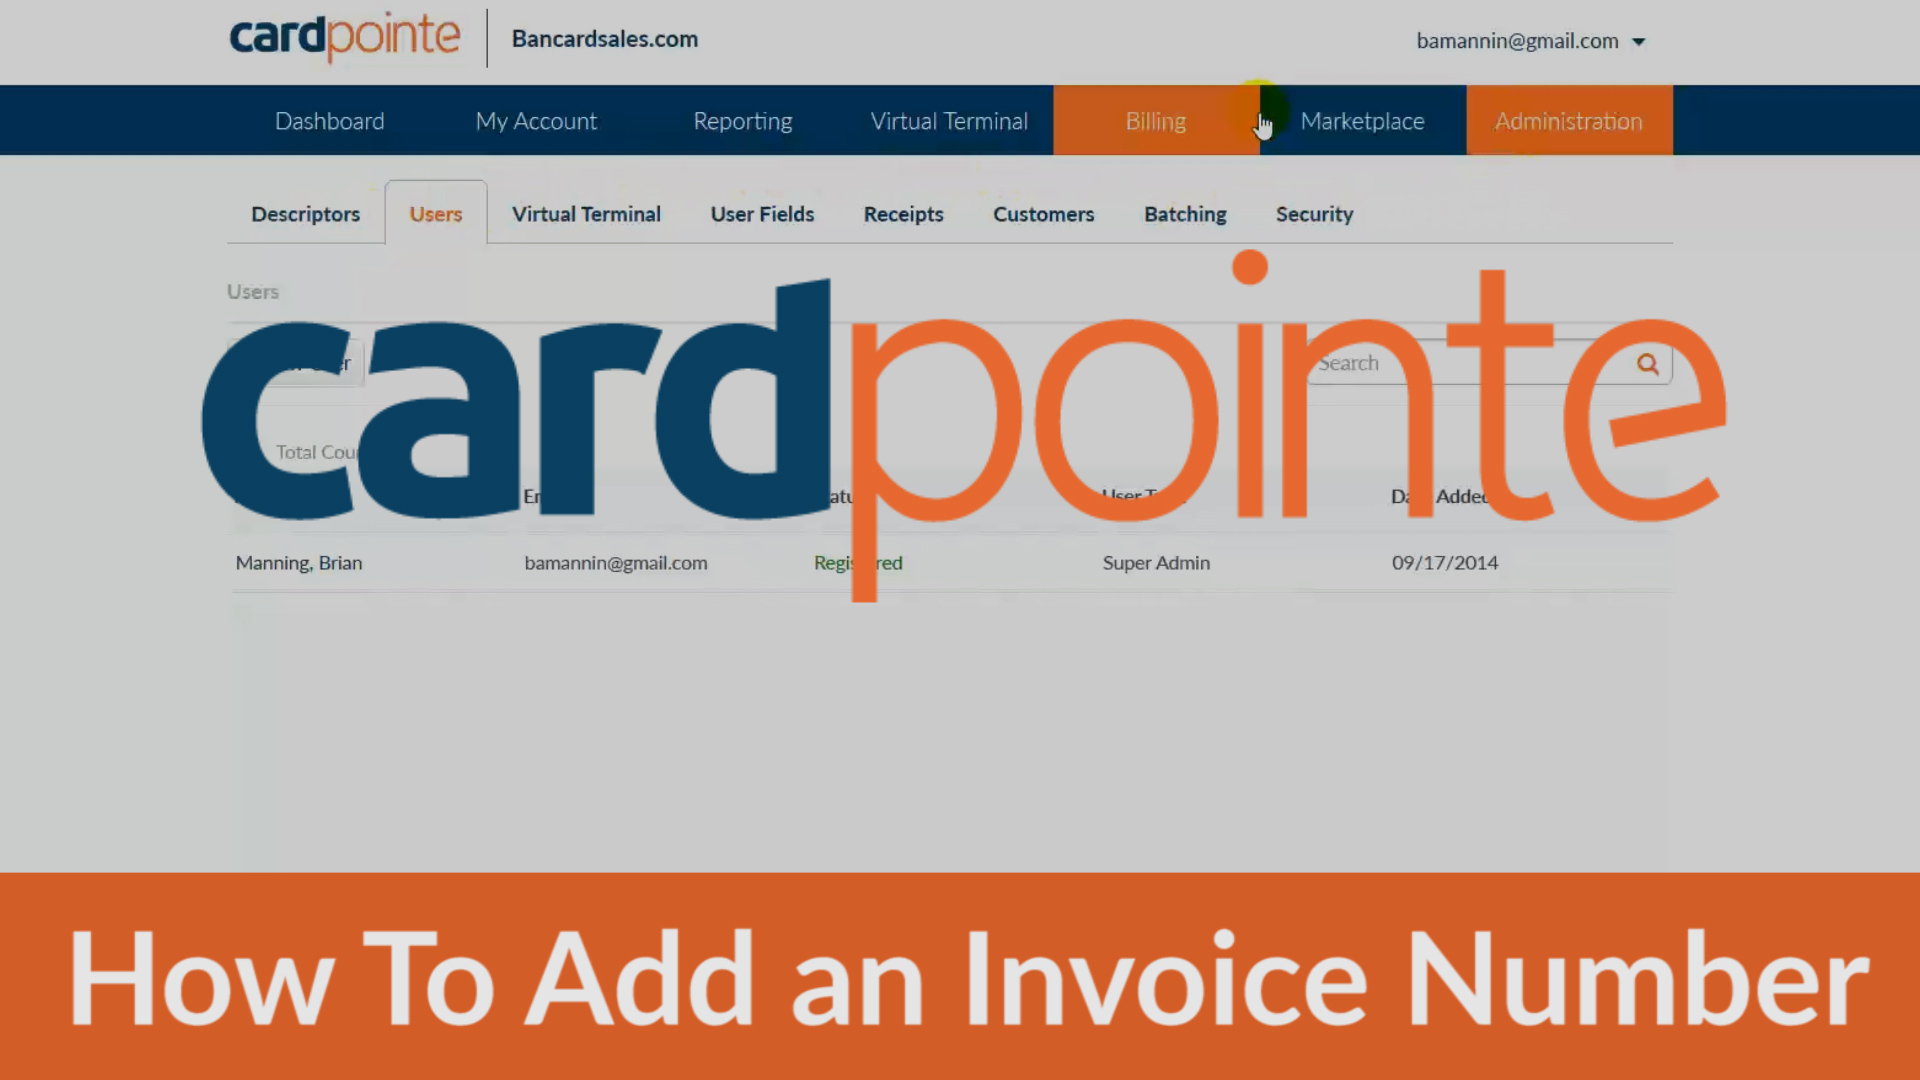 Cardpointe Online - Adding Invoice Number and other custom fields in Cardpointe